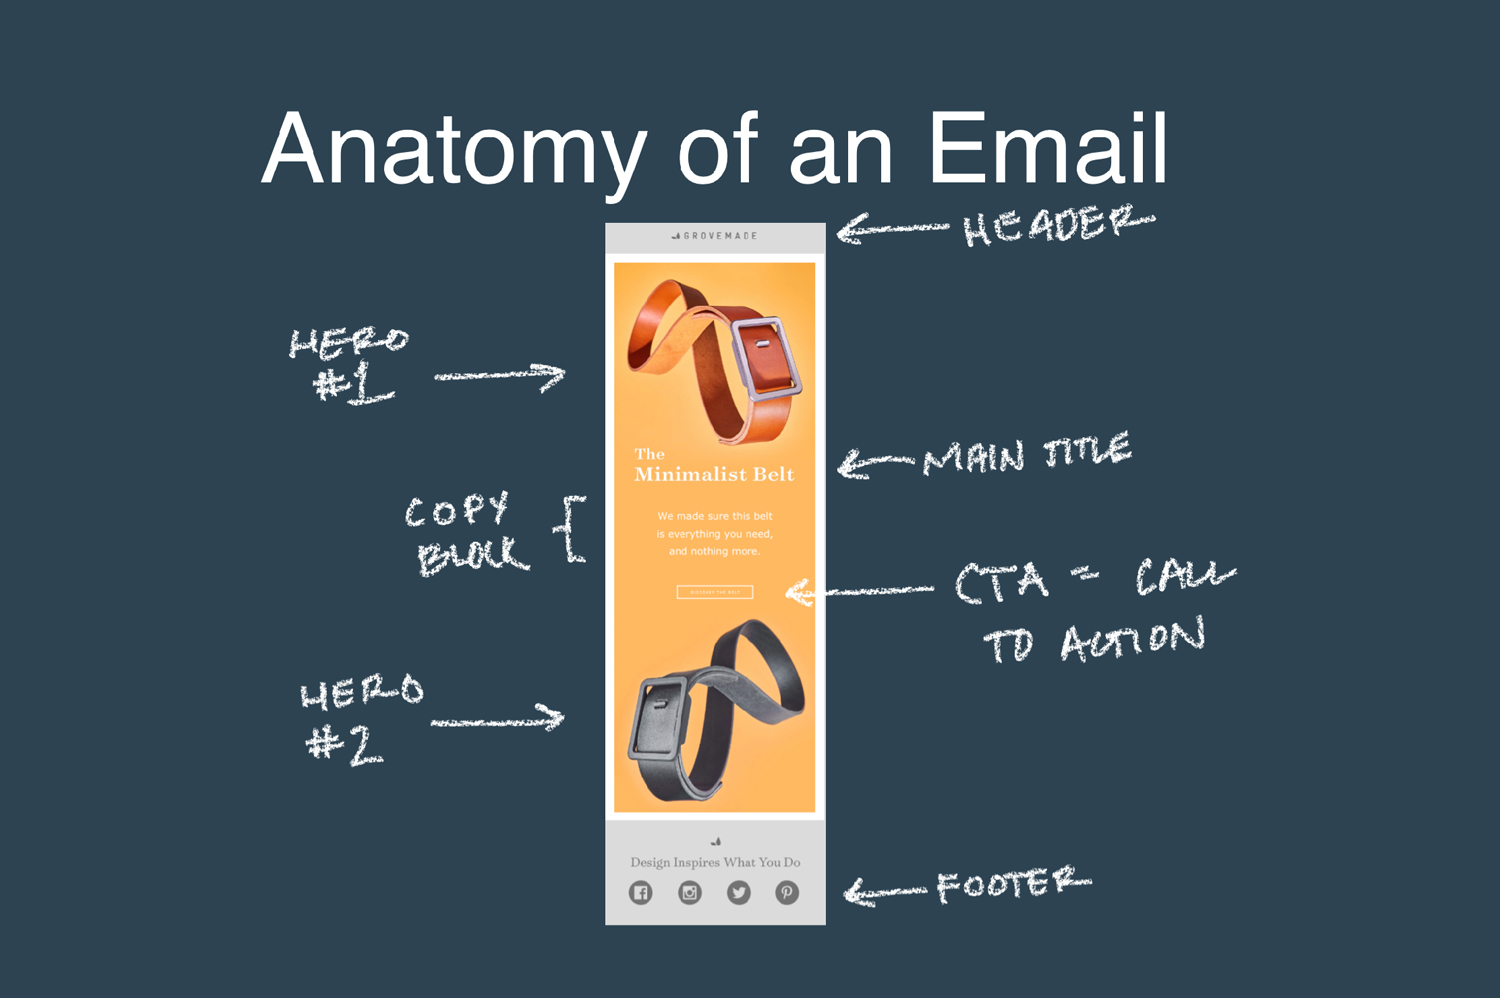 anatomy-of-an-email.jpg